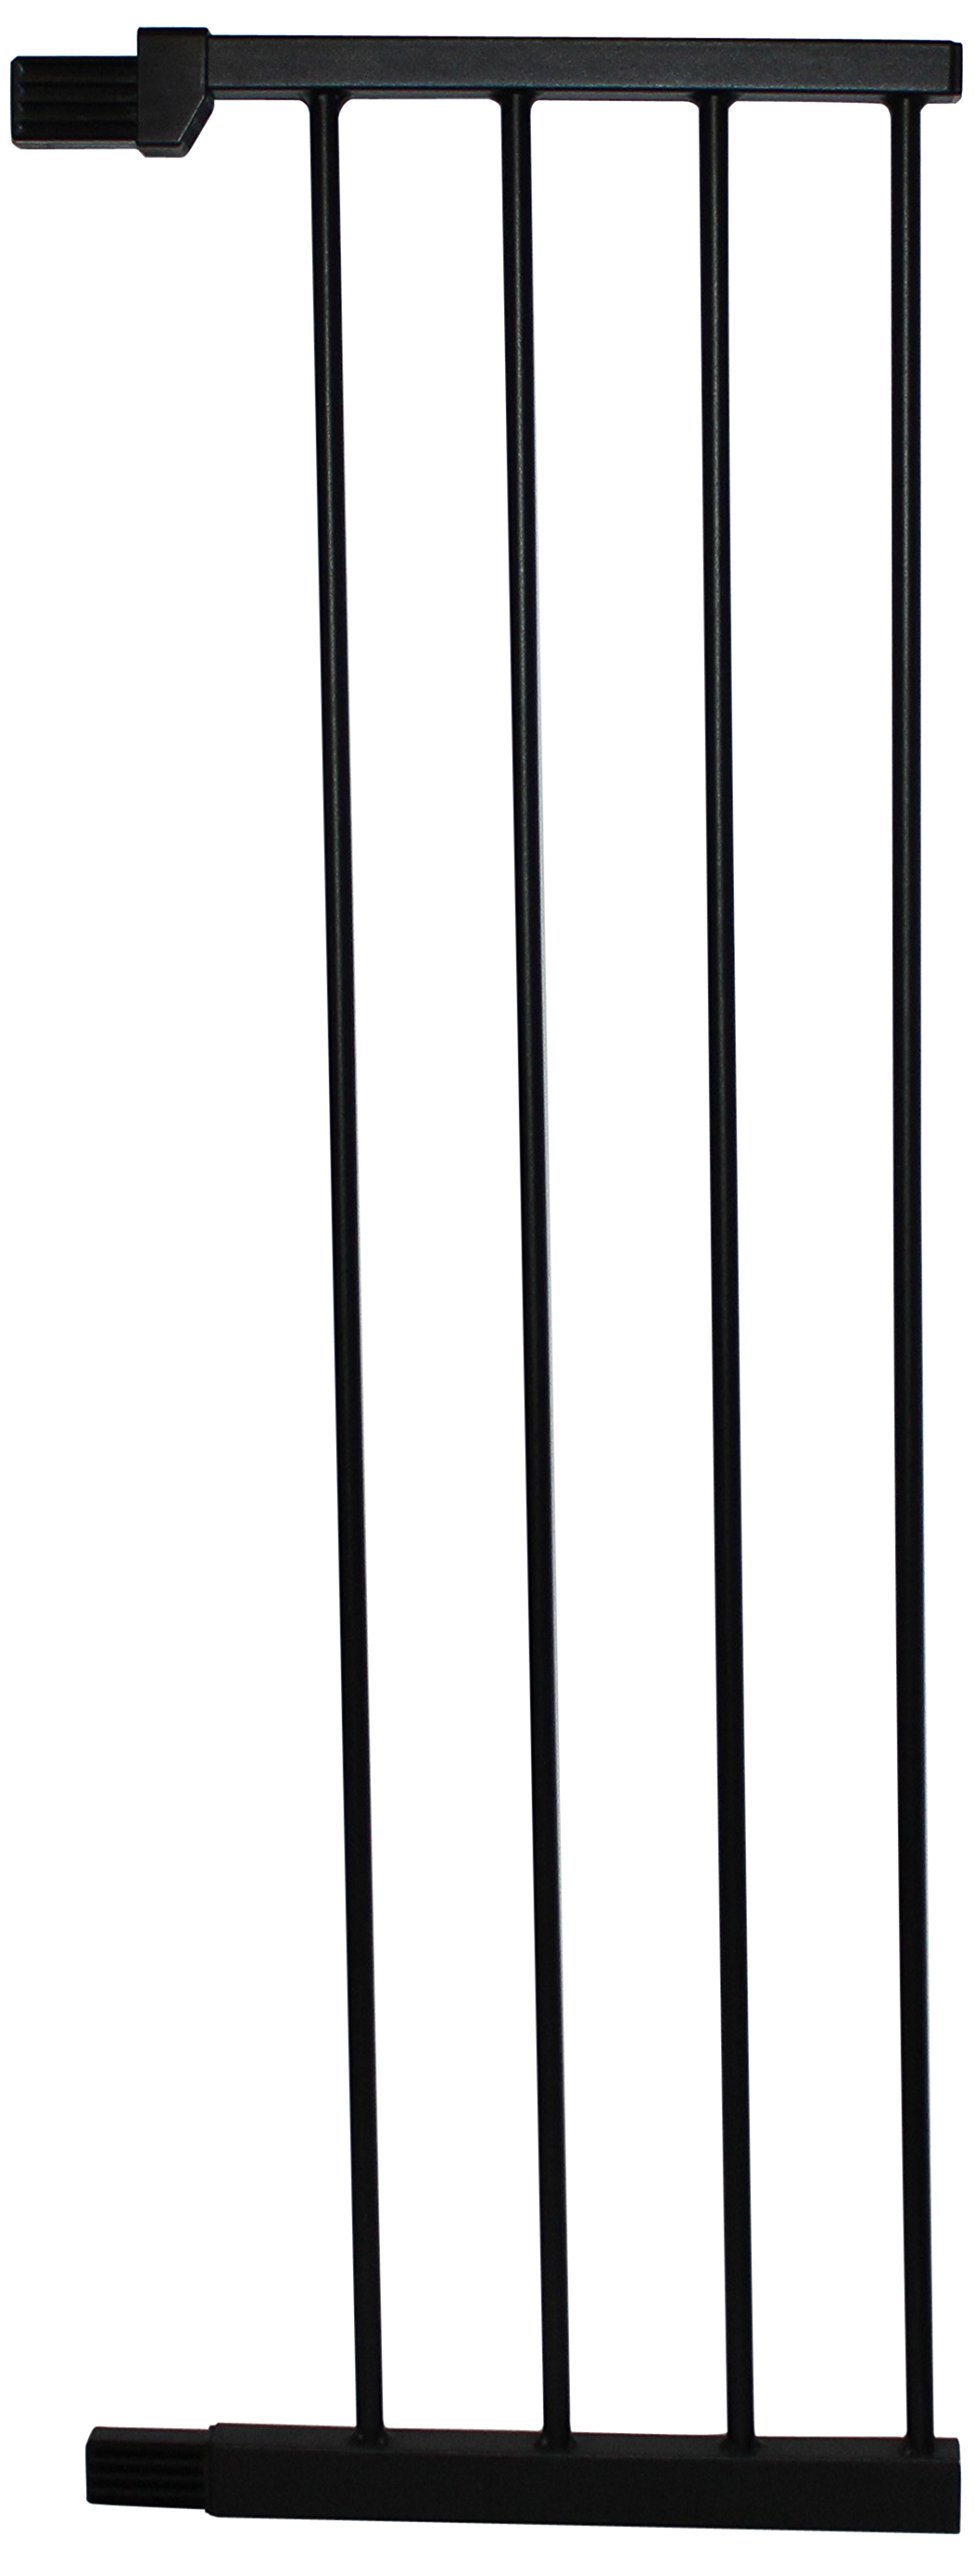 Cardinal Gates Extension for Extra Tall Premium Pressure Gate, Black, Large